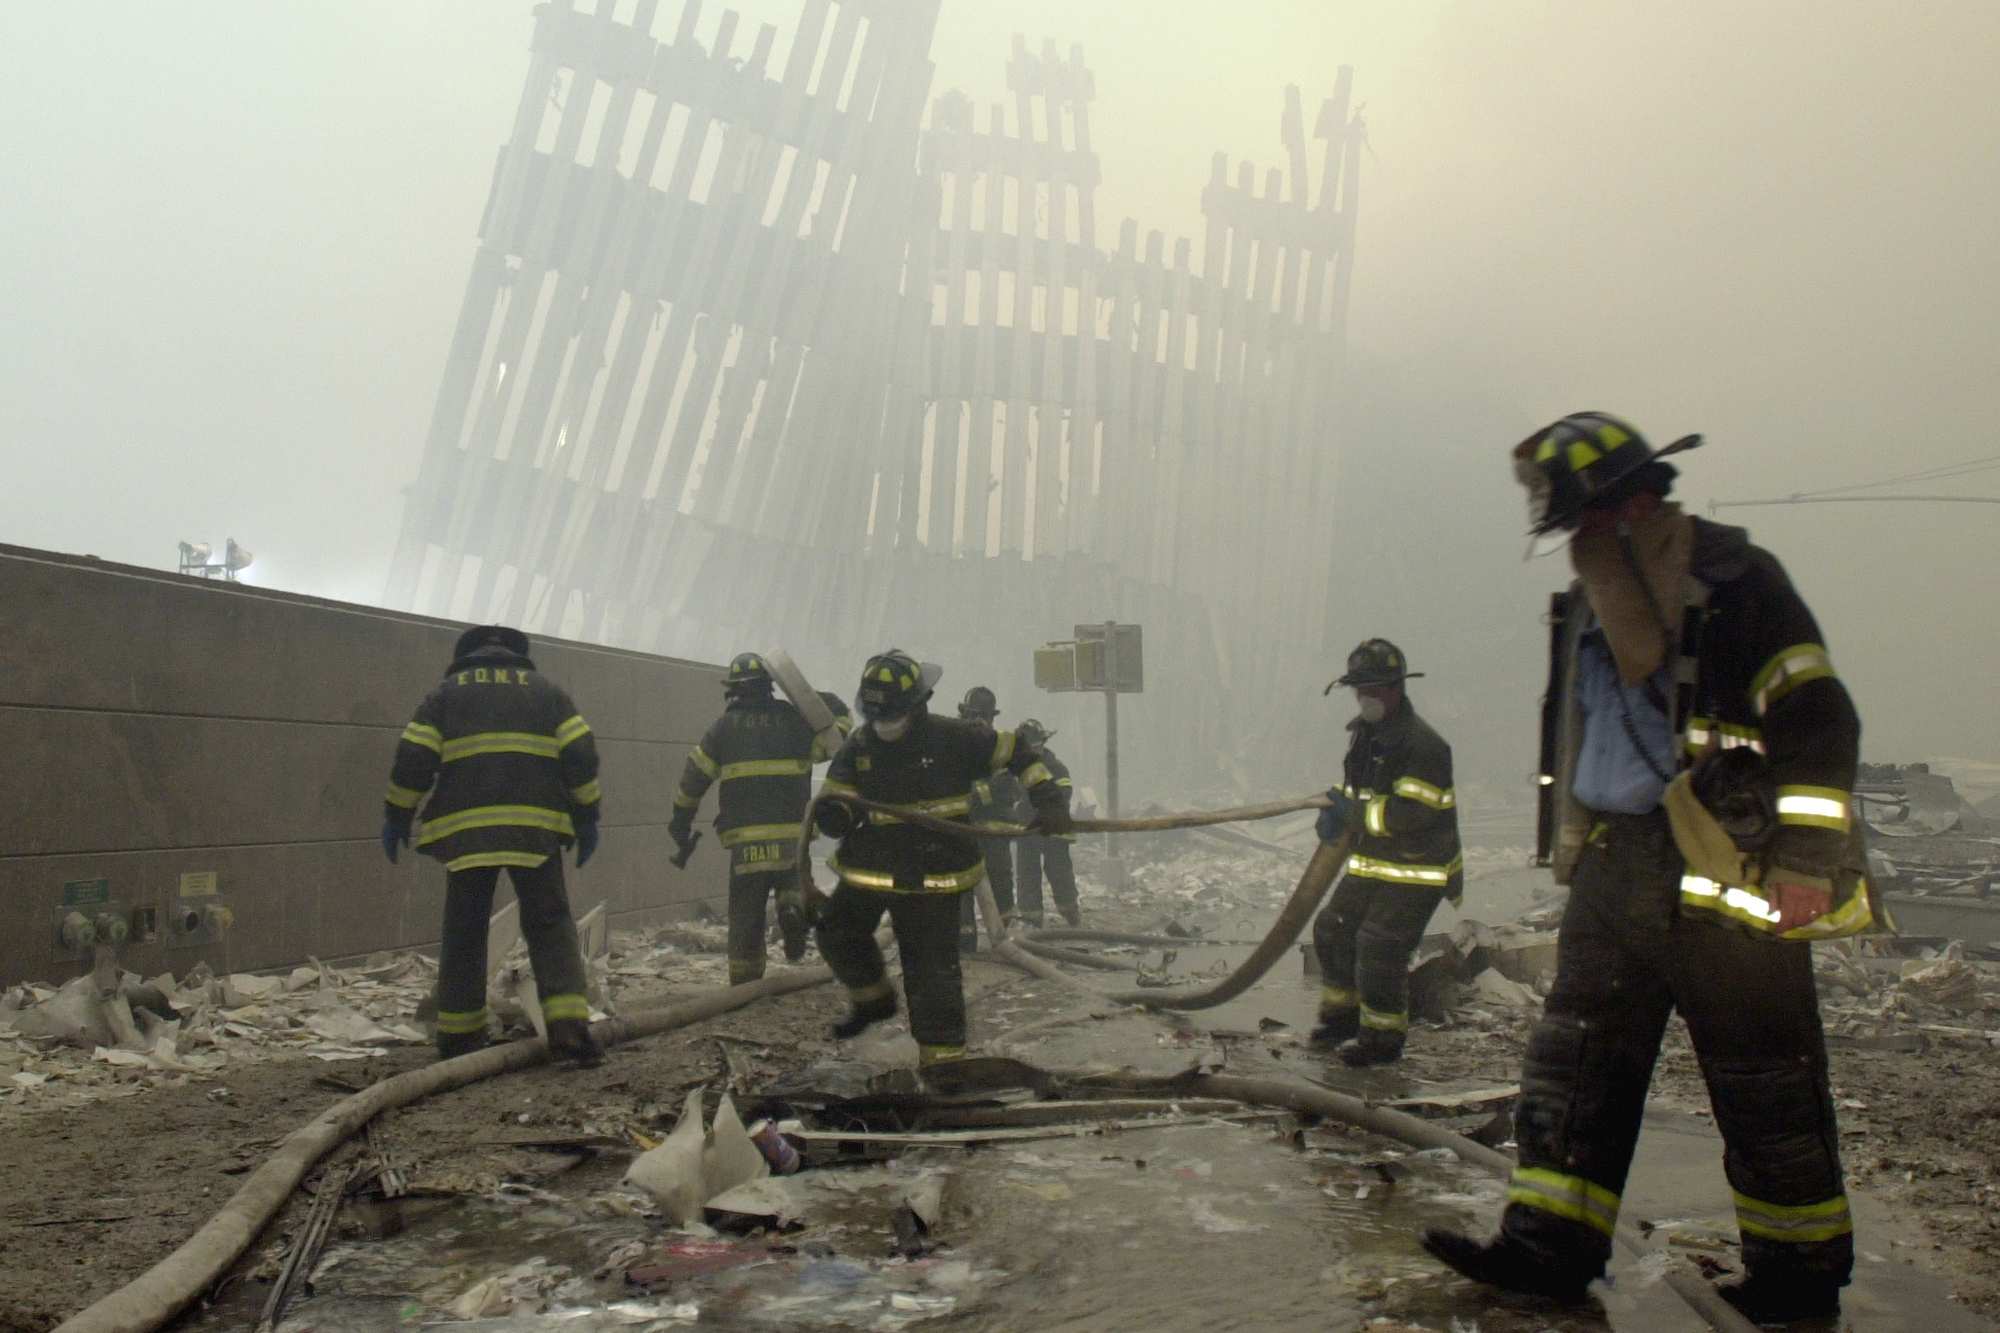 'We cannot forget': US marks 18 years since 9/11 attacks with somber ceremonies